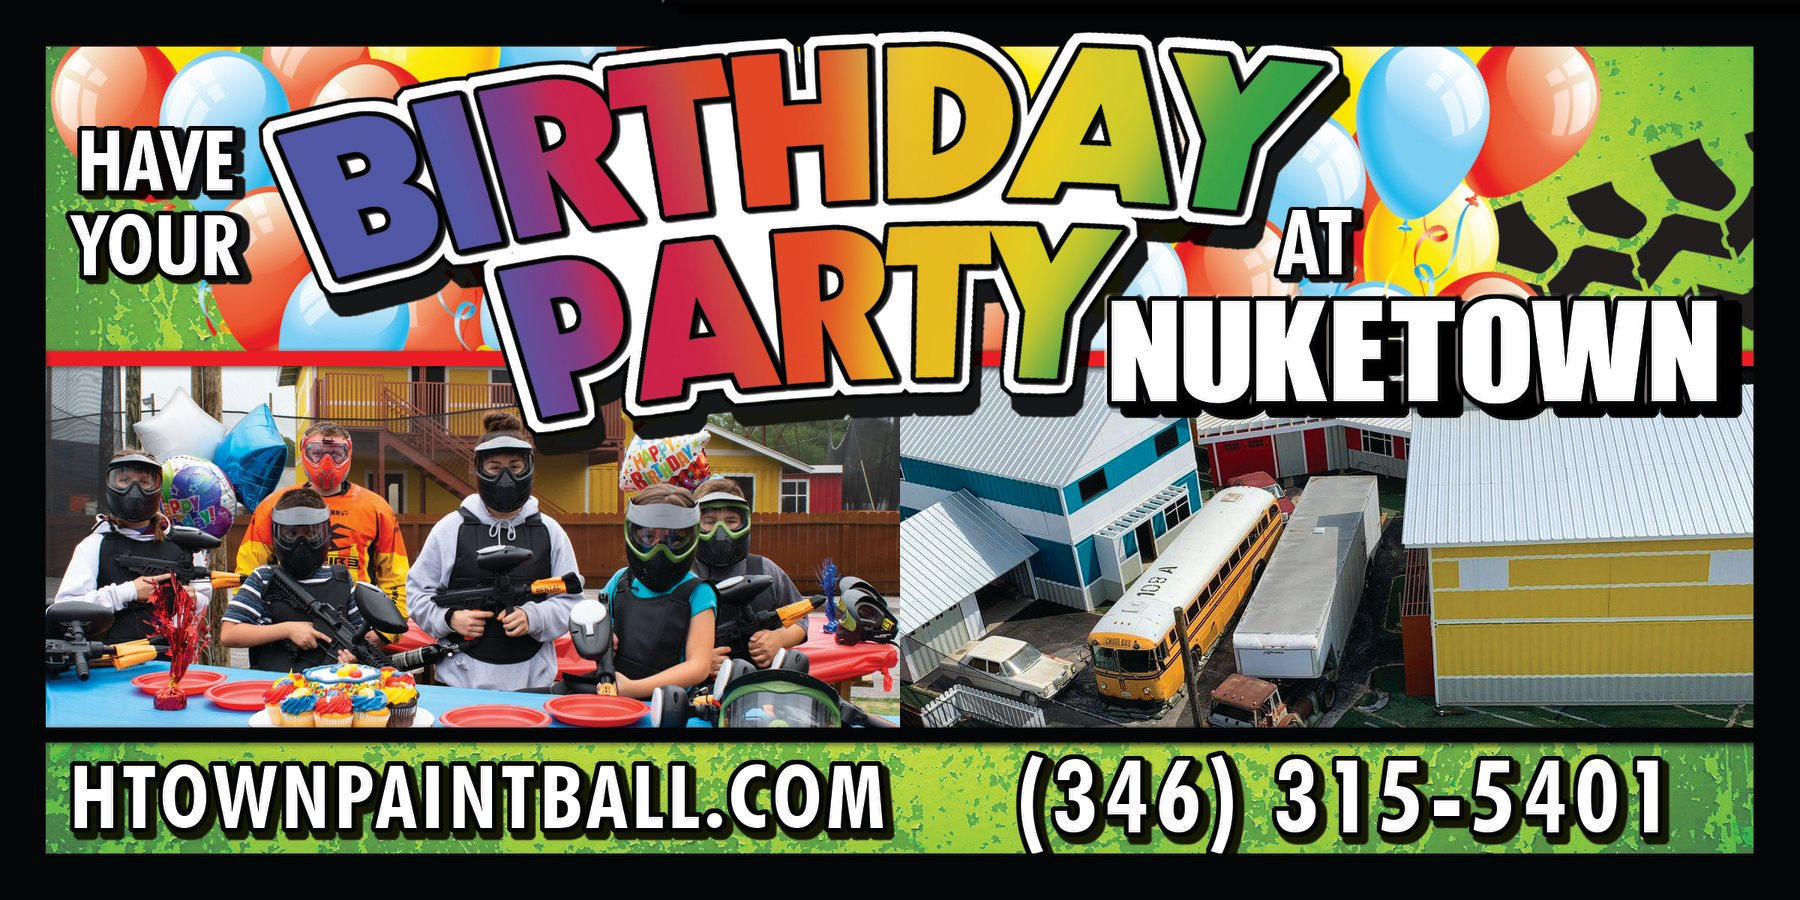 Book a Birthday Party Banner